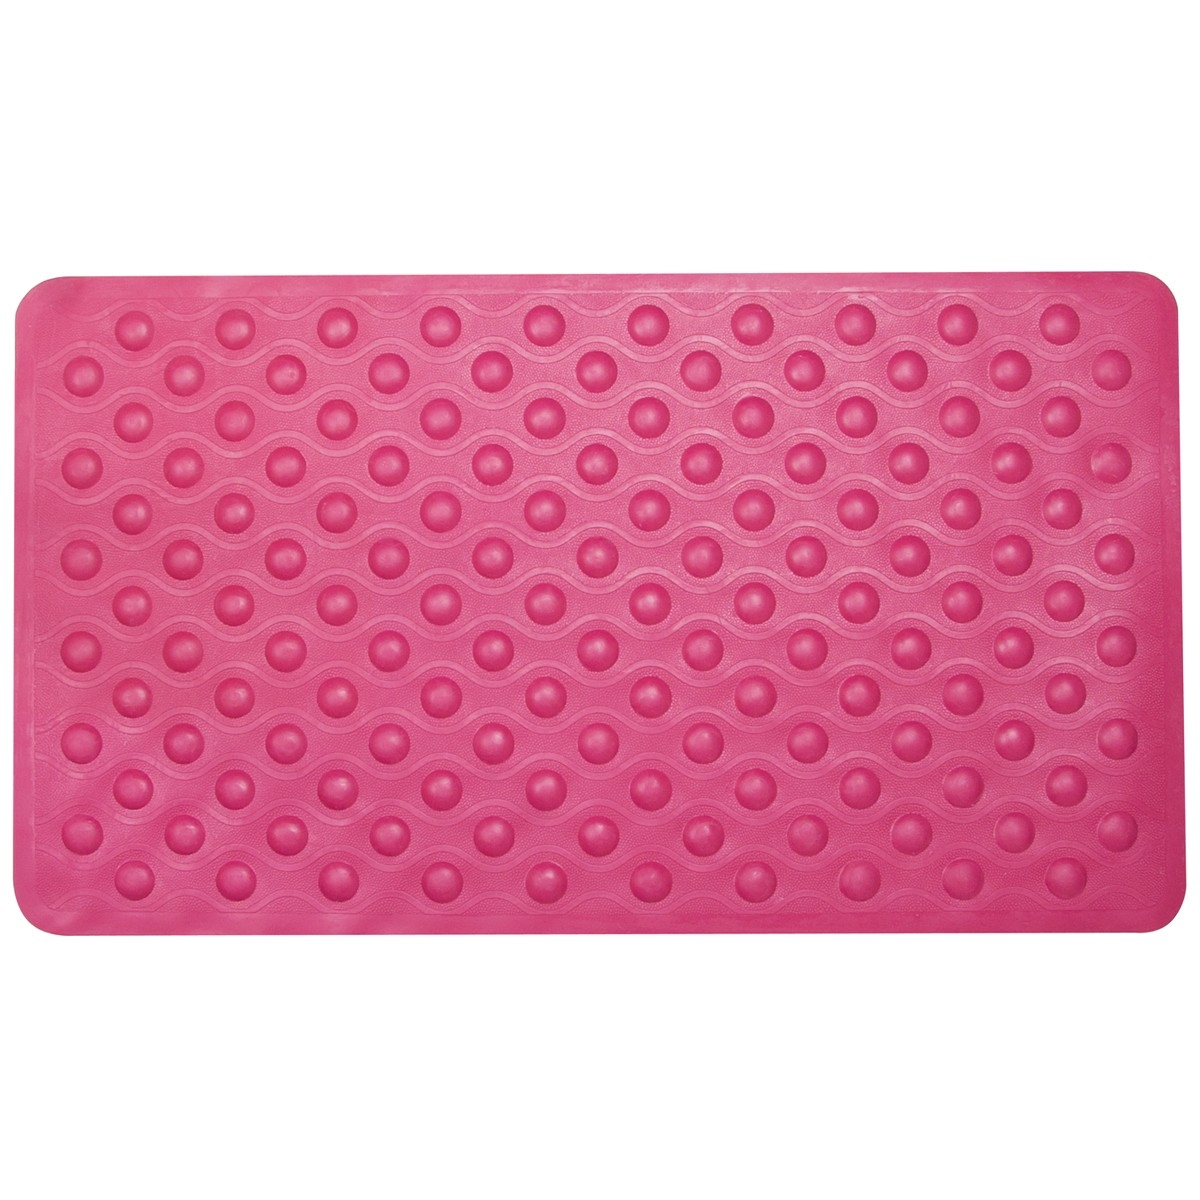 Rubber Bath Mats With Holes